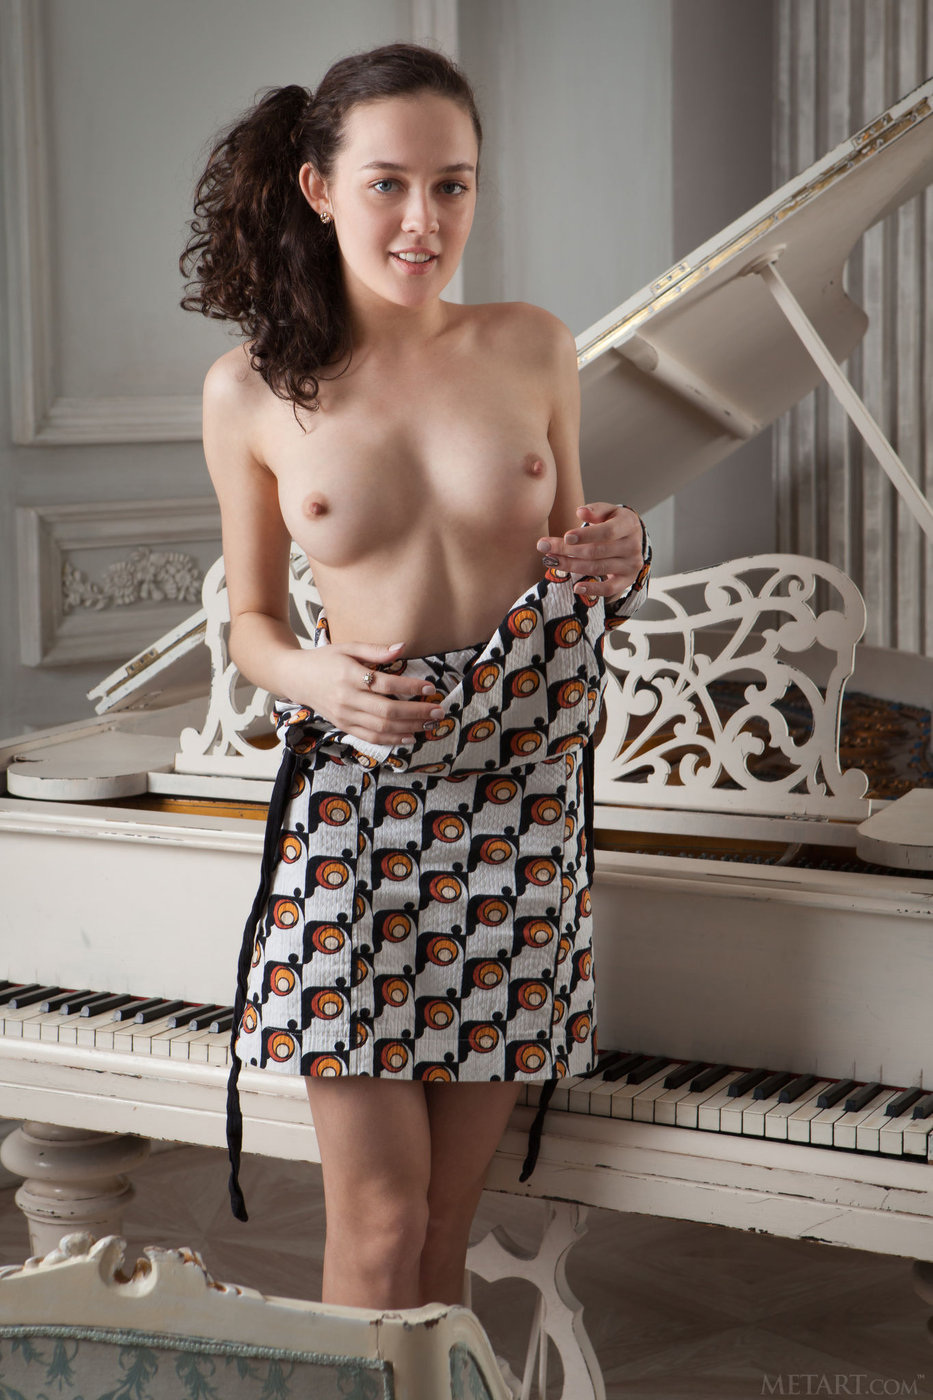 Curly-haired brunette takes off her dress to show her bushy pussy